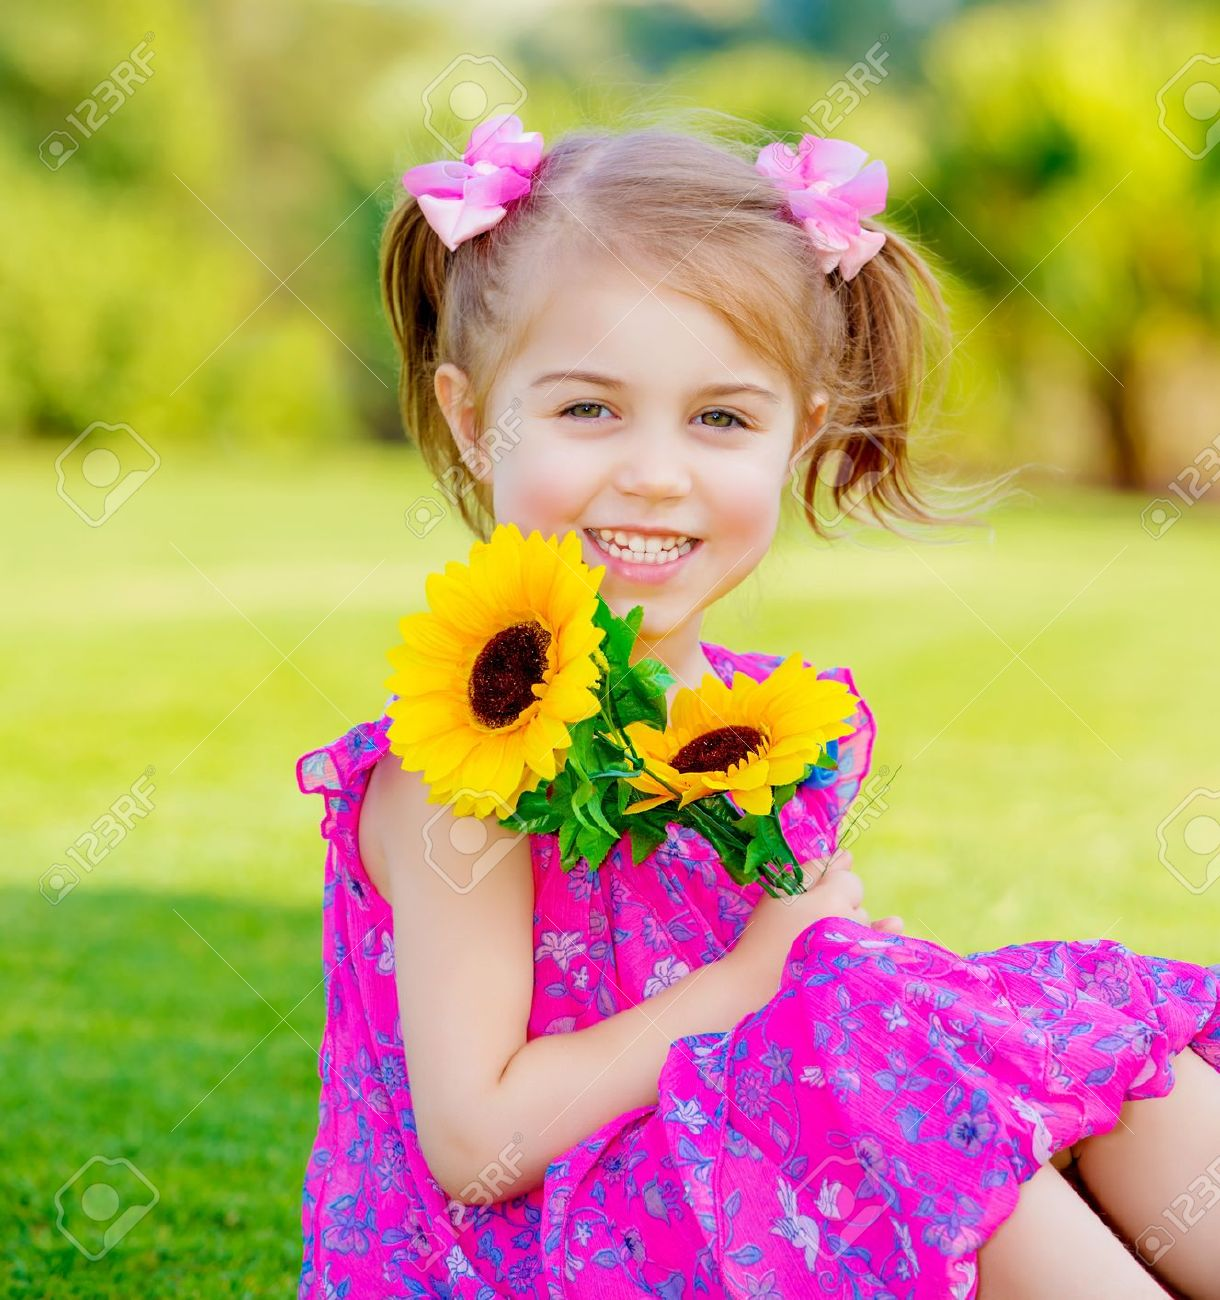 Happy baby girl playing outdoor cute child holding fresh sunflower flowers kid having fun